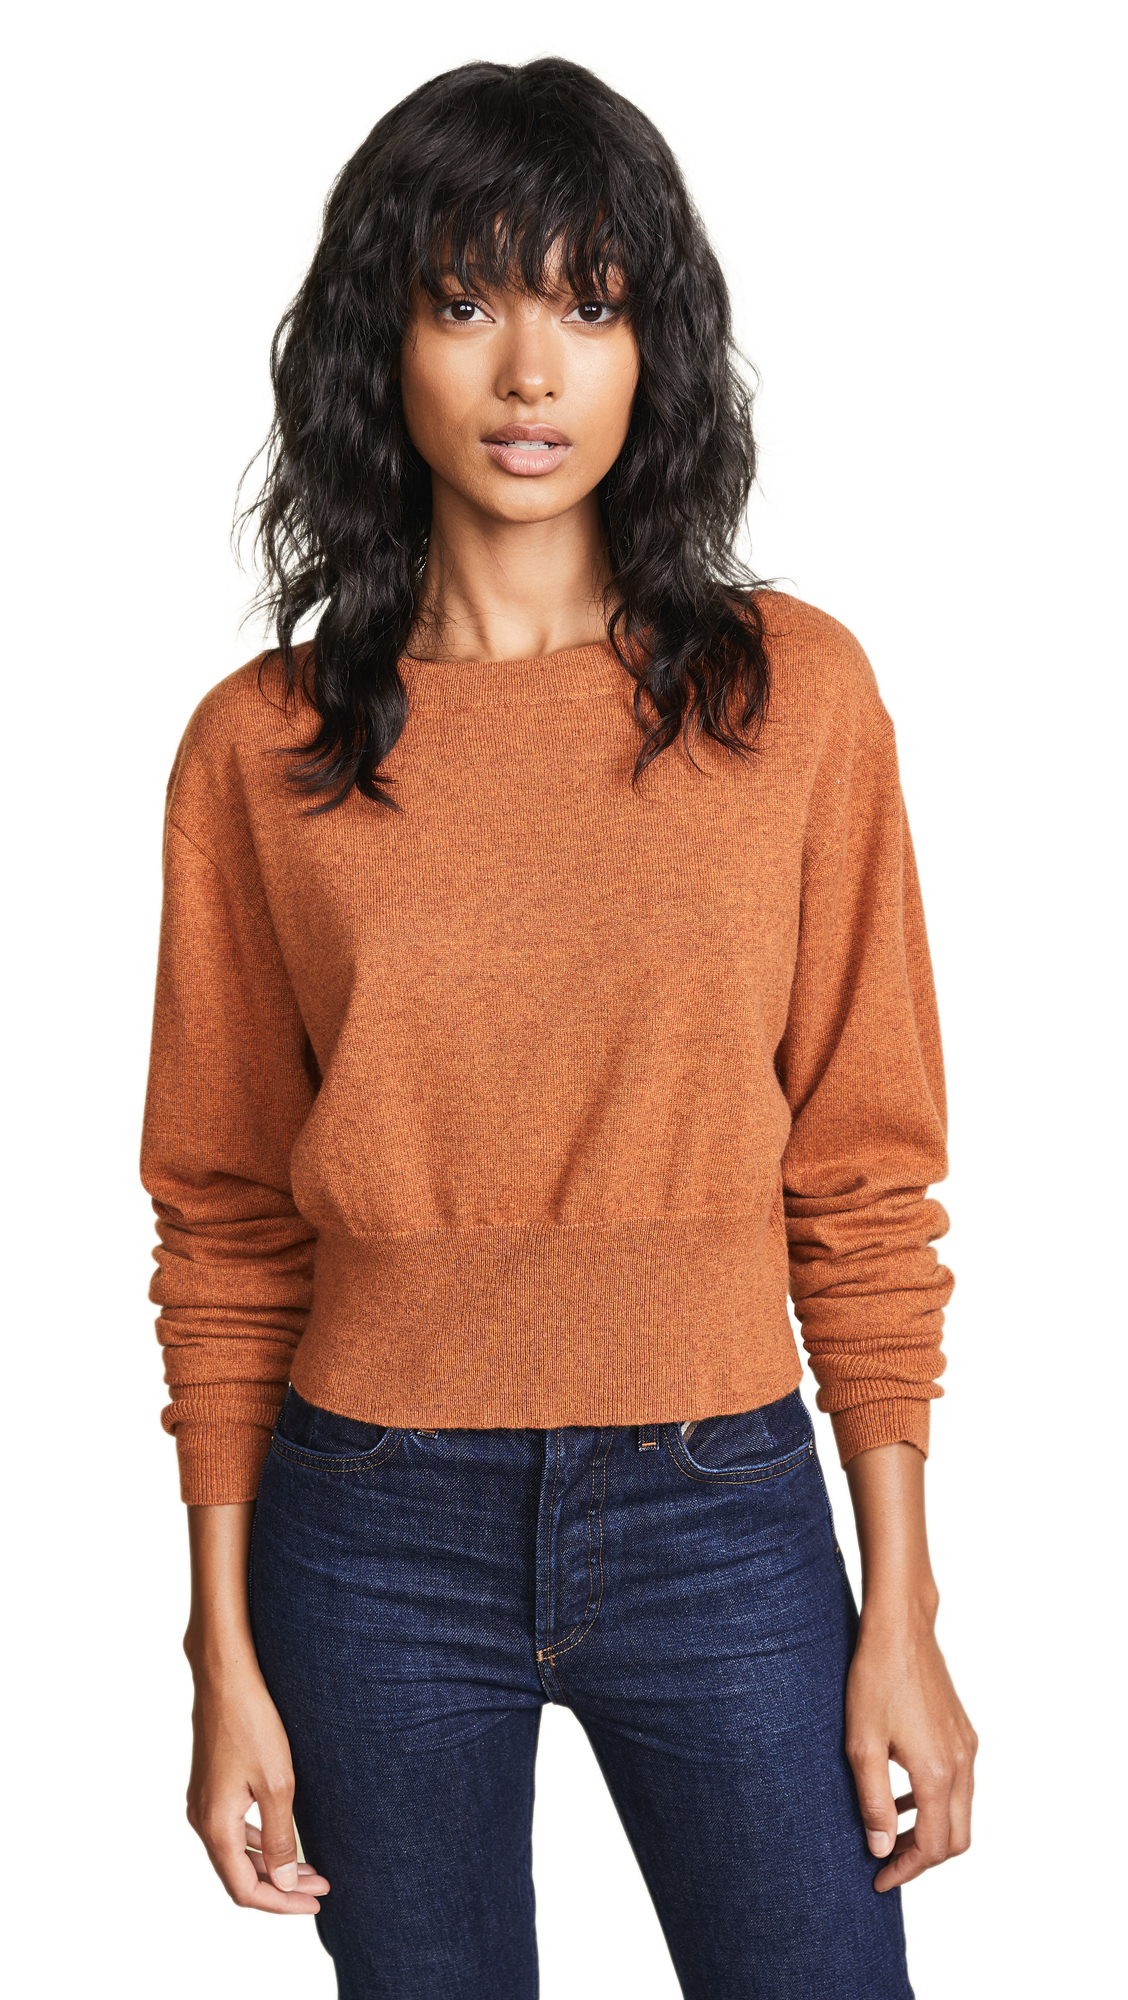 AUTUMN CASHMERE Scrunch Sleeve Cashmere Sweater in Spice